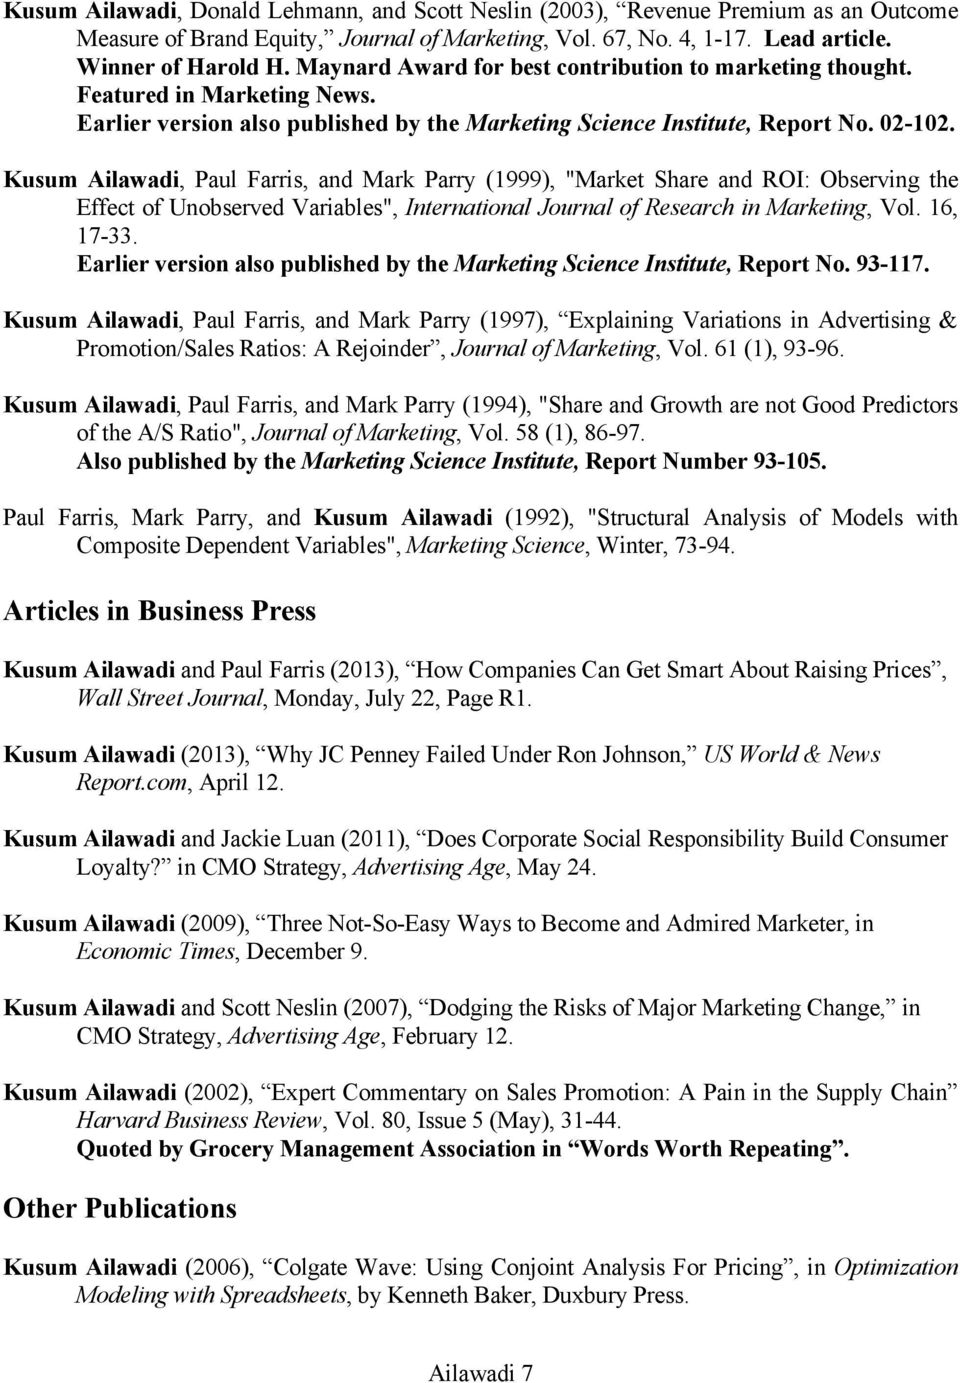 "Kusum Ailawadi, Paul Farris, and Mark Parry (1999), ""Market Share and ROI: Observing the Effect of Unobserved Variables"", International Journal of Research in Marketing, Vol. 16, 17-33."